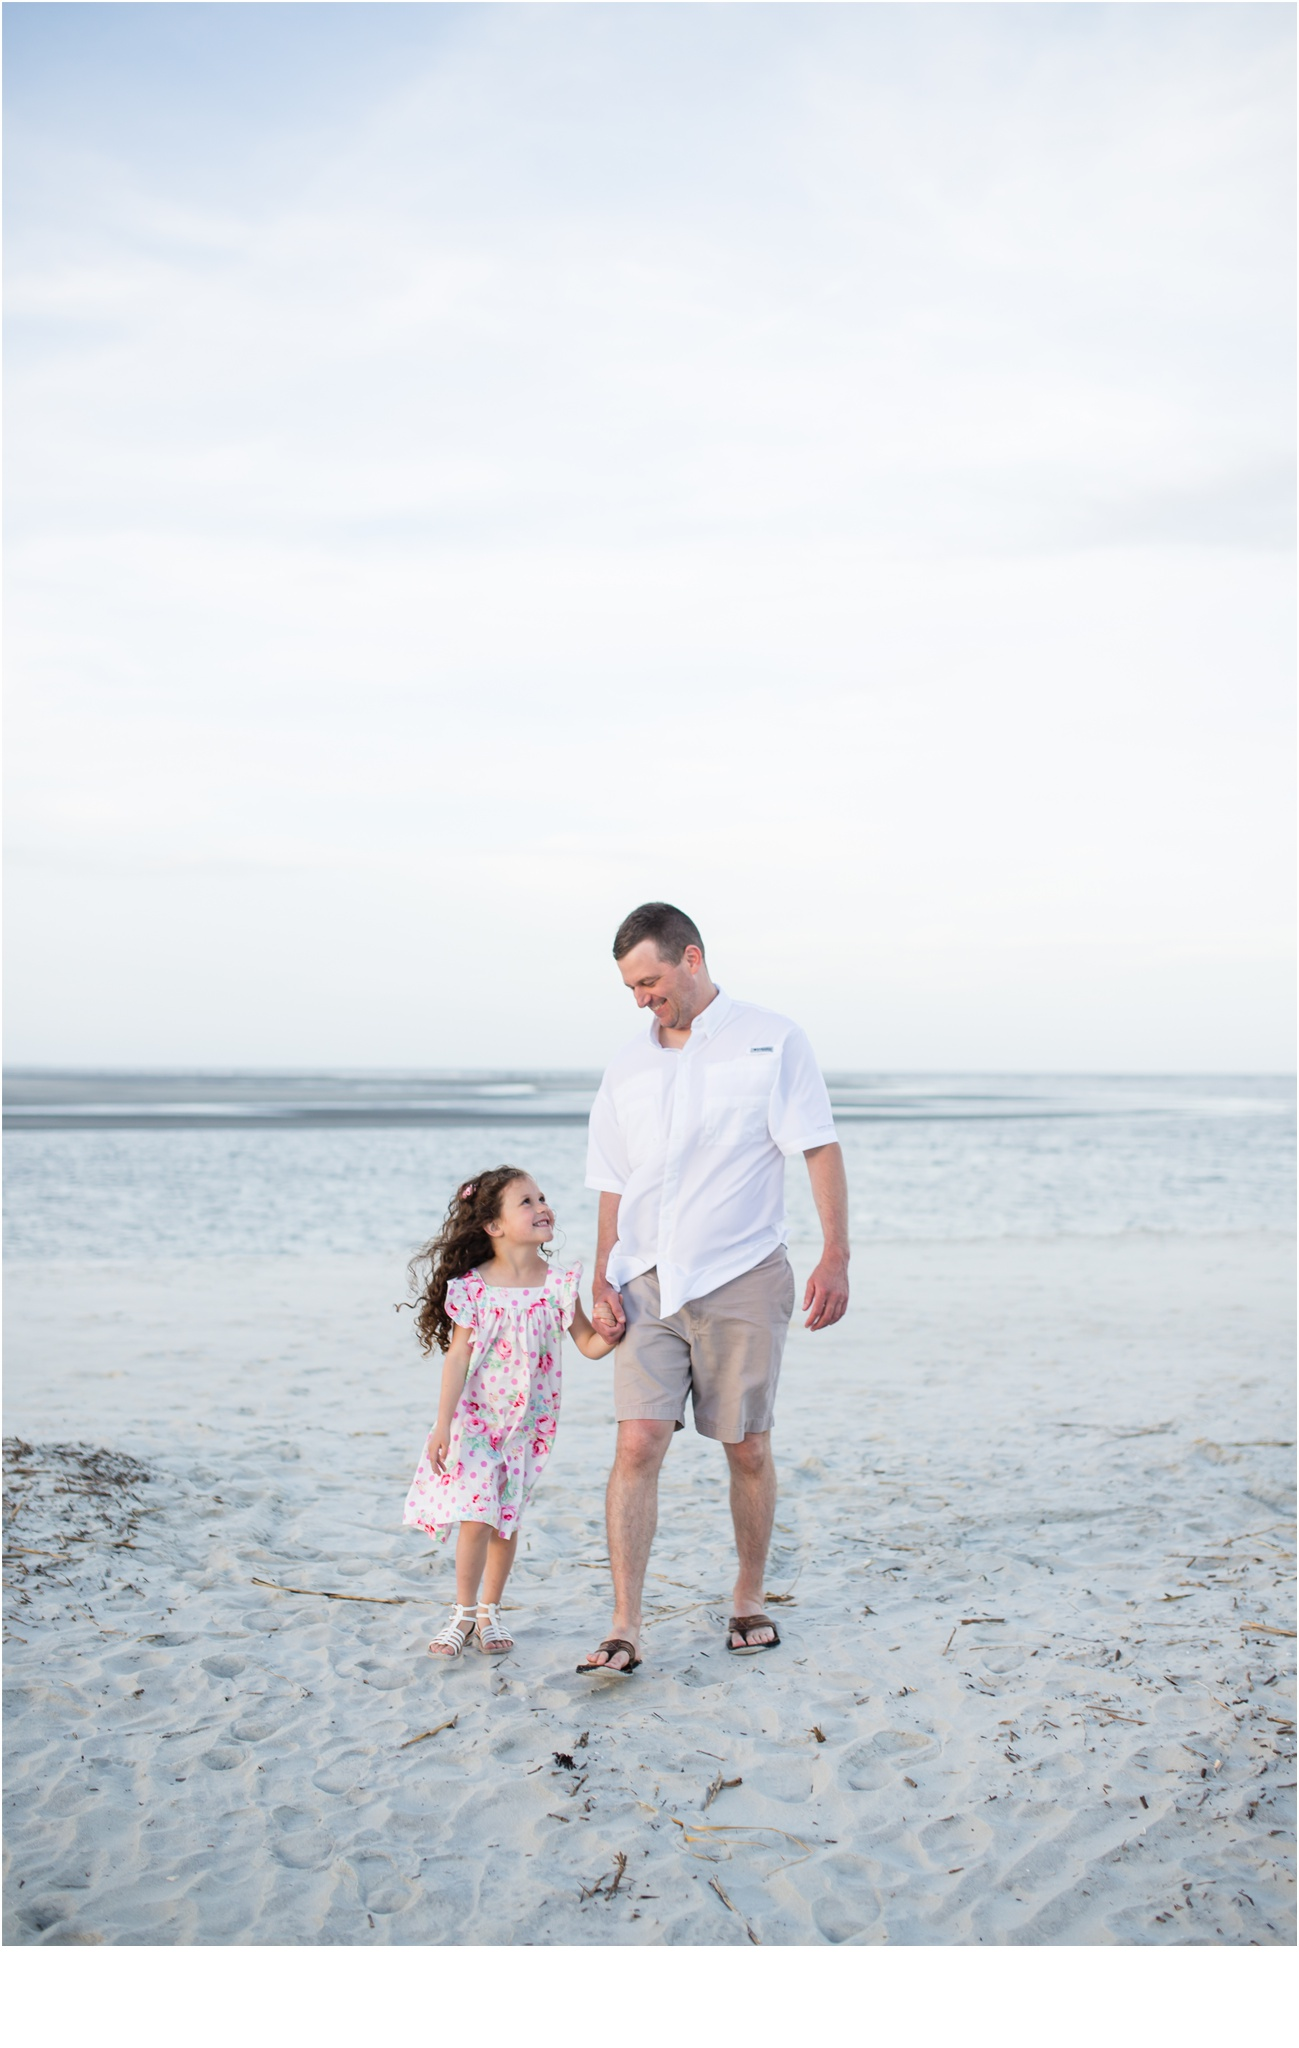 Rainey_Gregg_Photography_St._Simons_Island_Georgia_California_Wedding_Portrait_Photography_0944.jpg